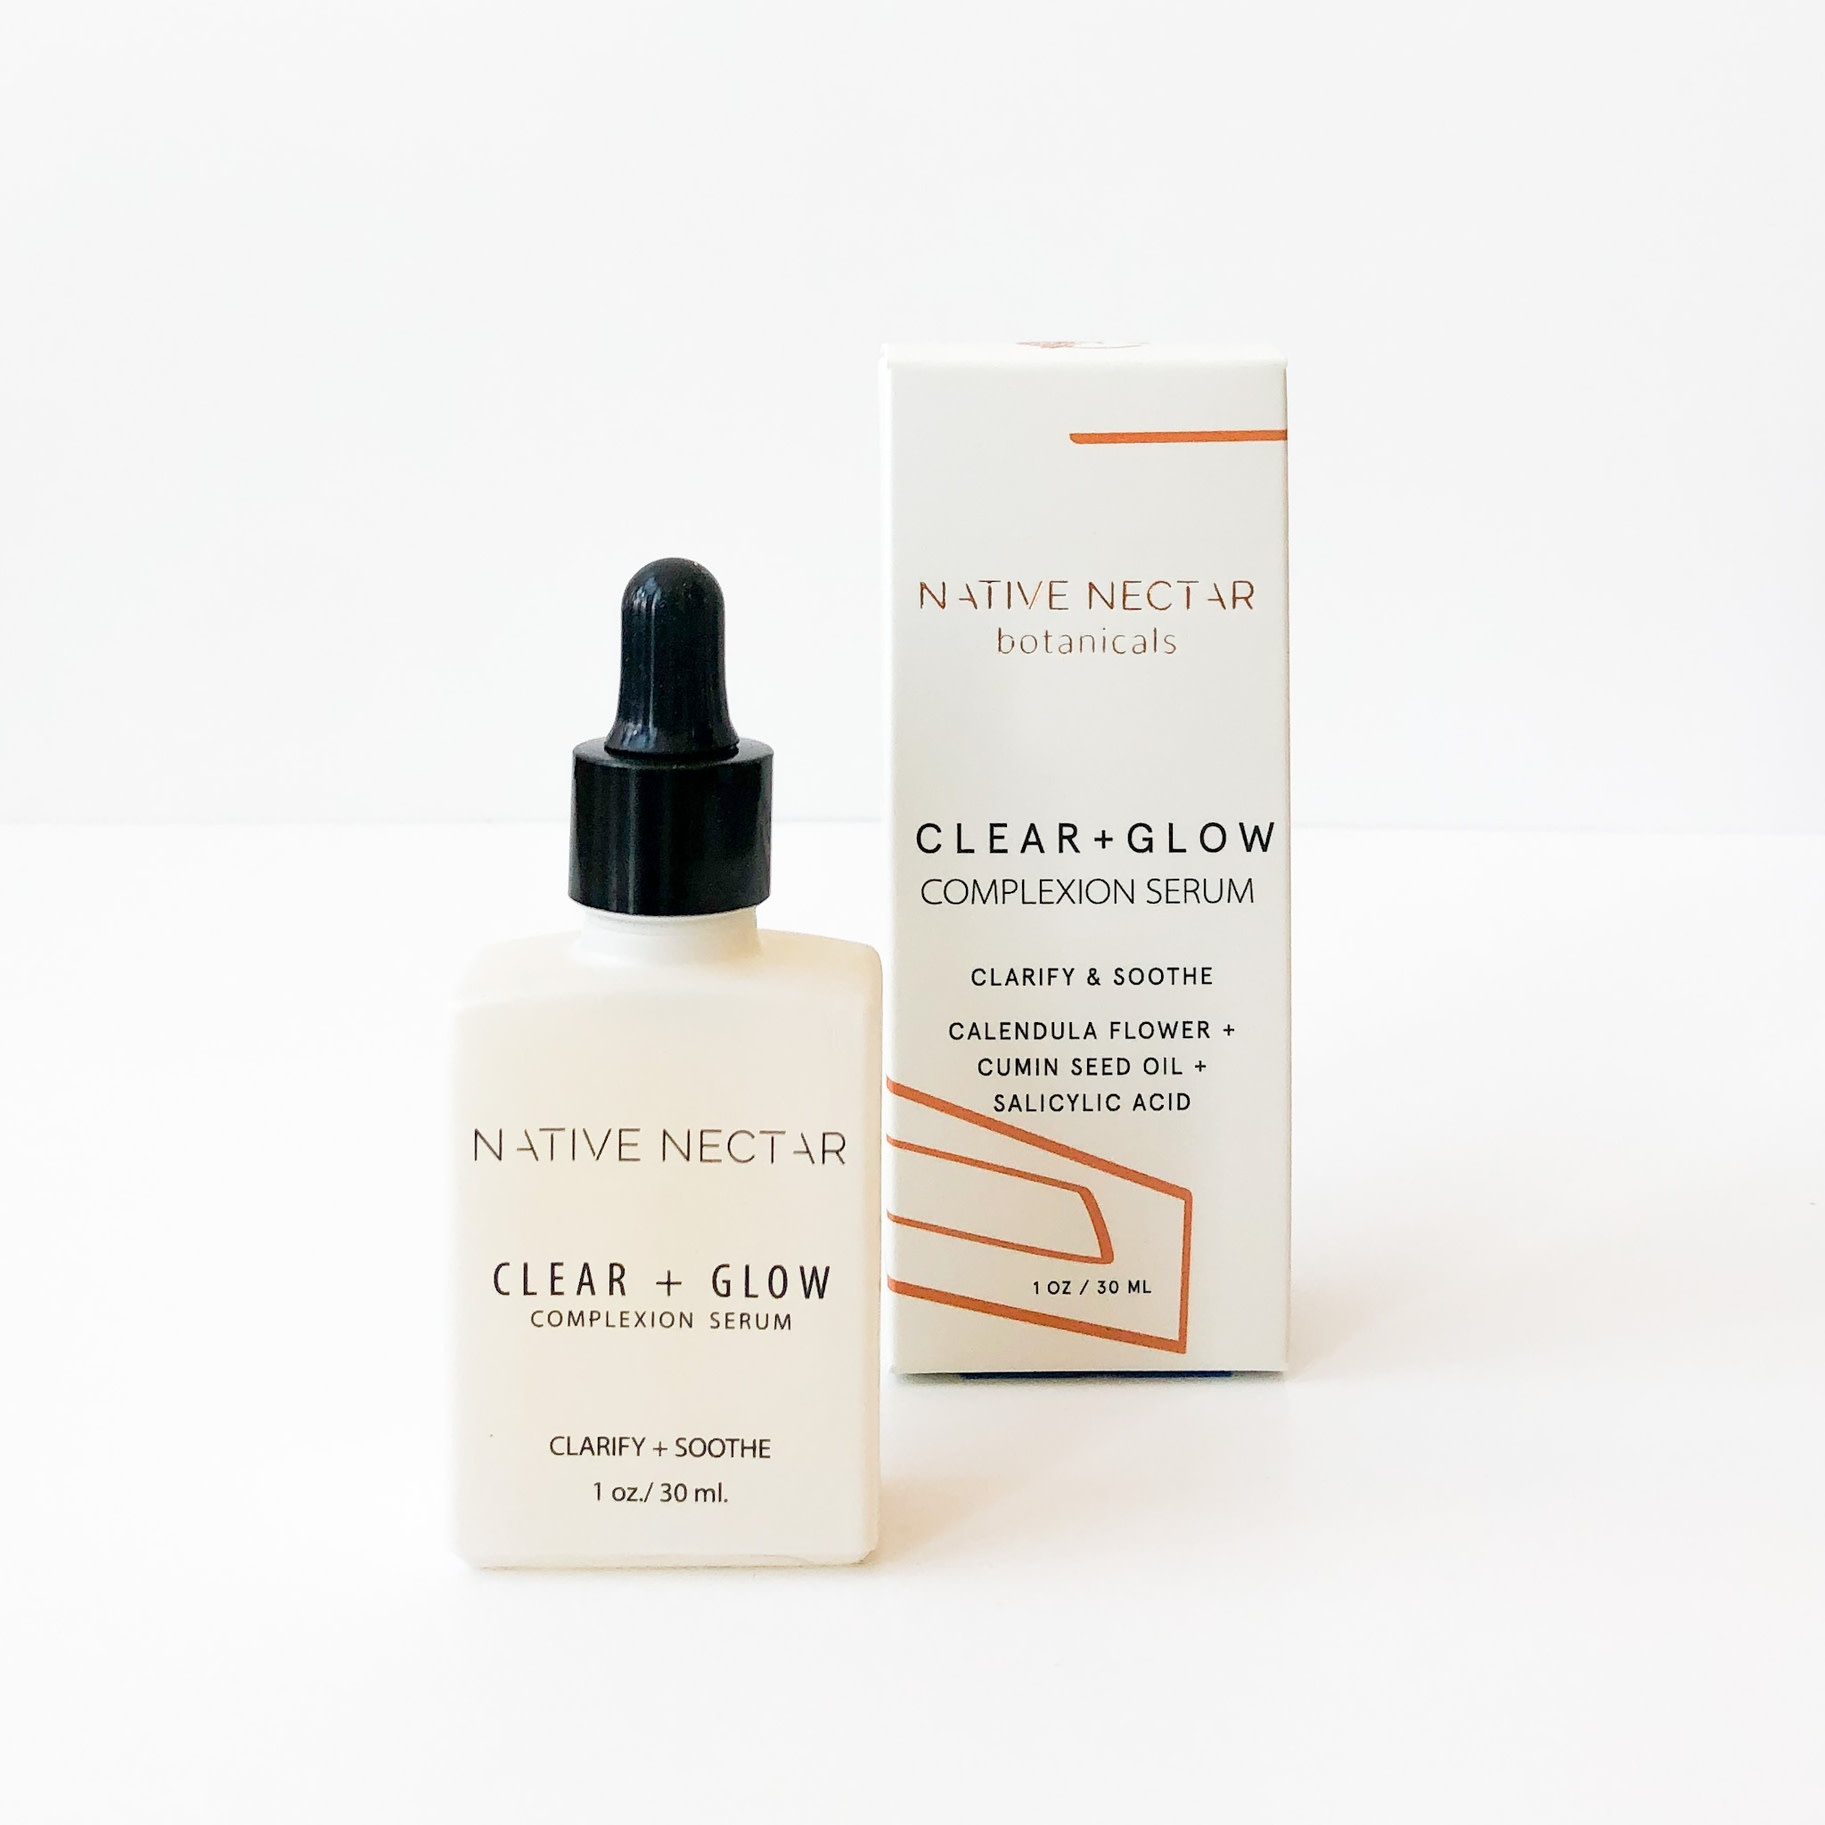 Native Nectar Botanicals Native Nectar Botanicals Clear+ Glow Complexion Serum